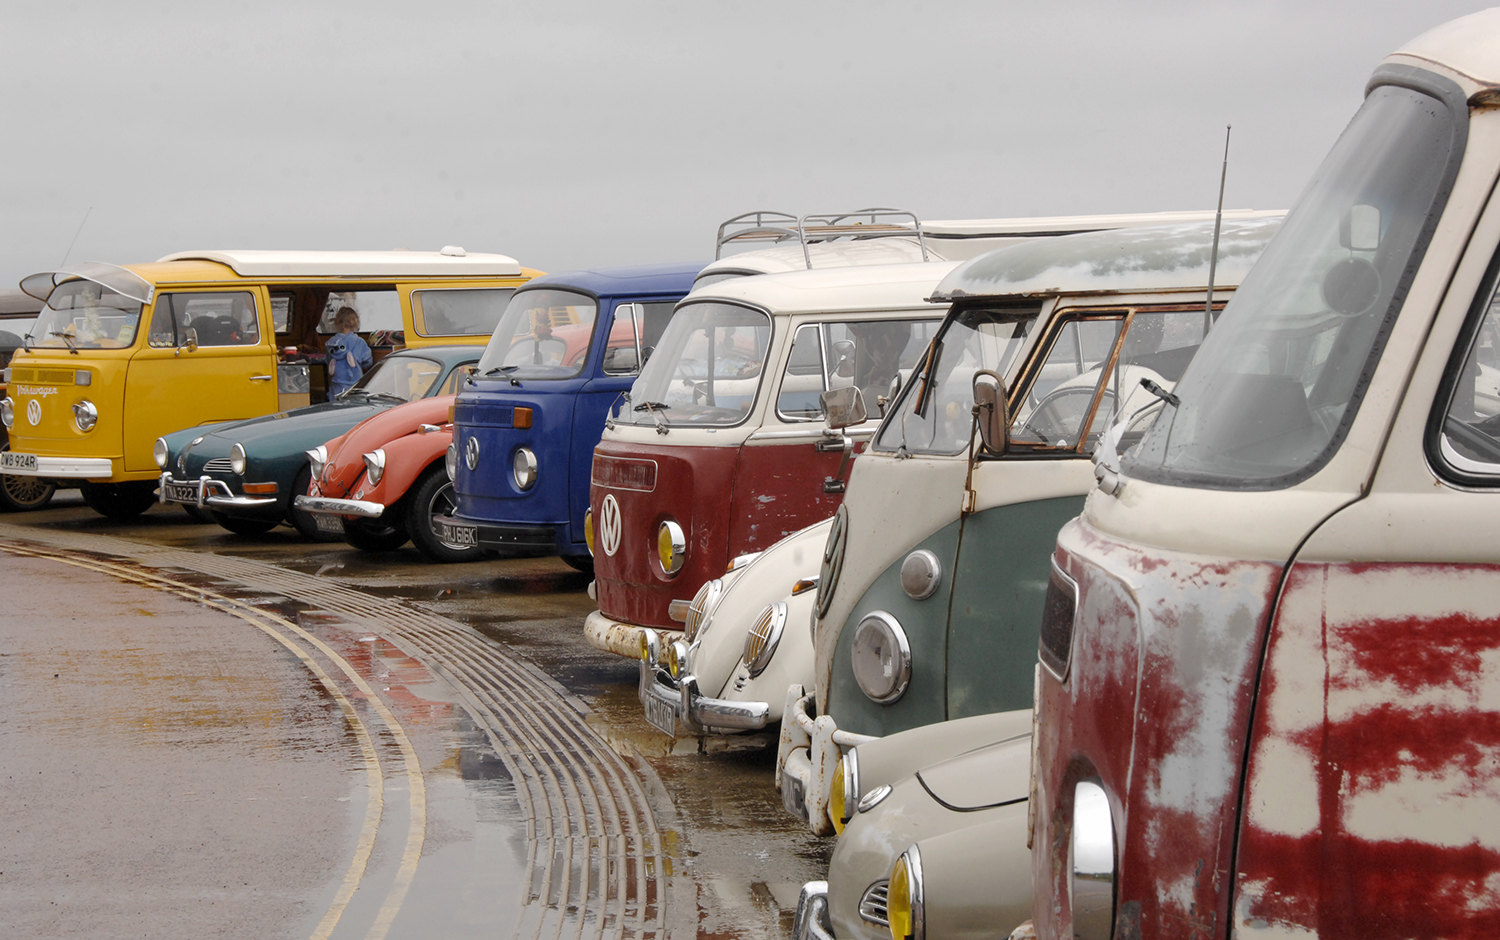 Some of the Volkswagens at the Sands piazza